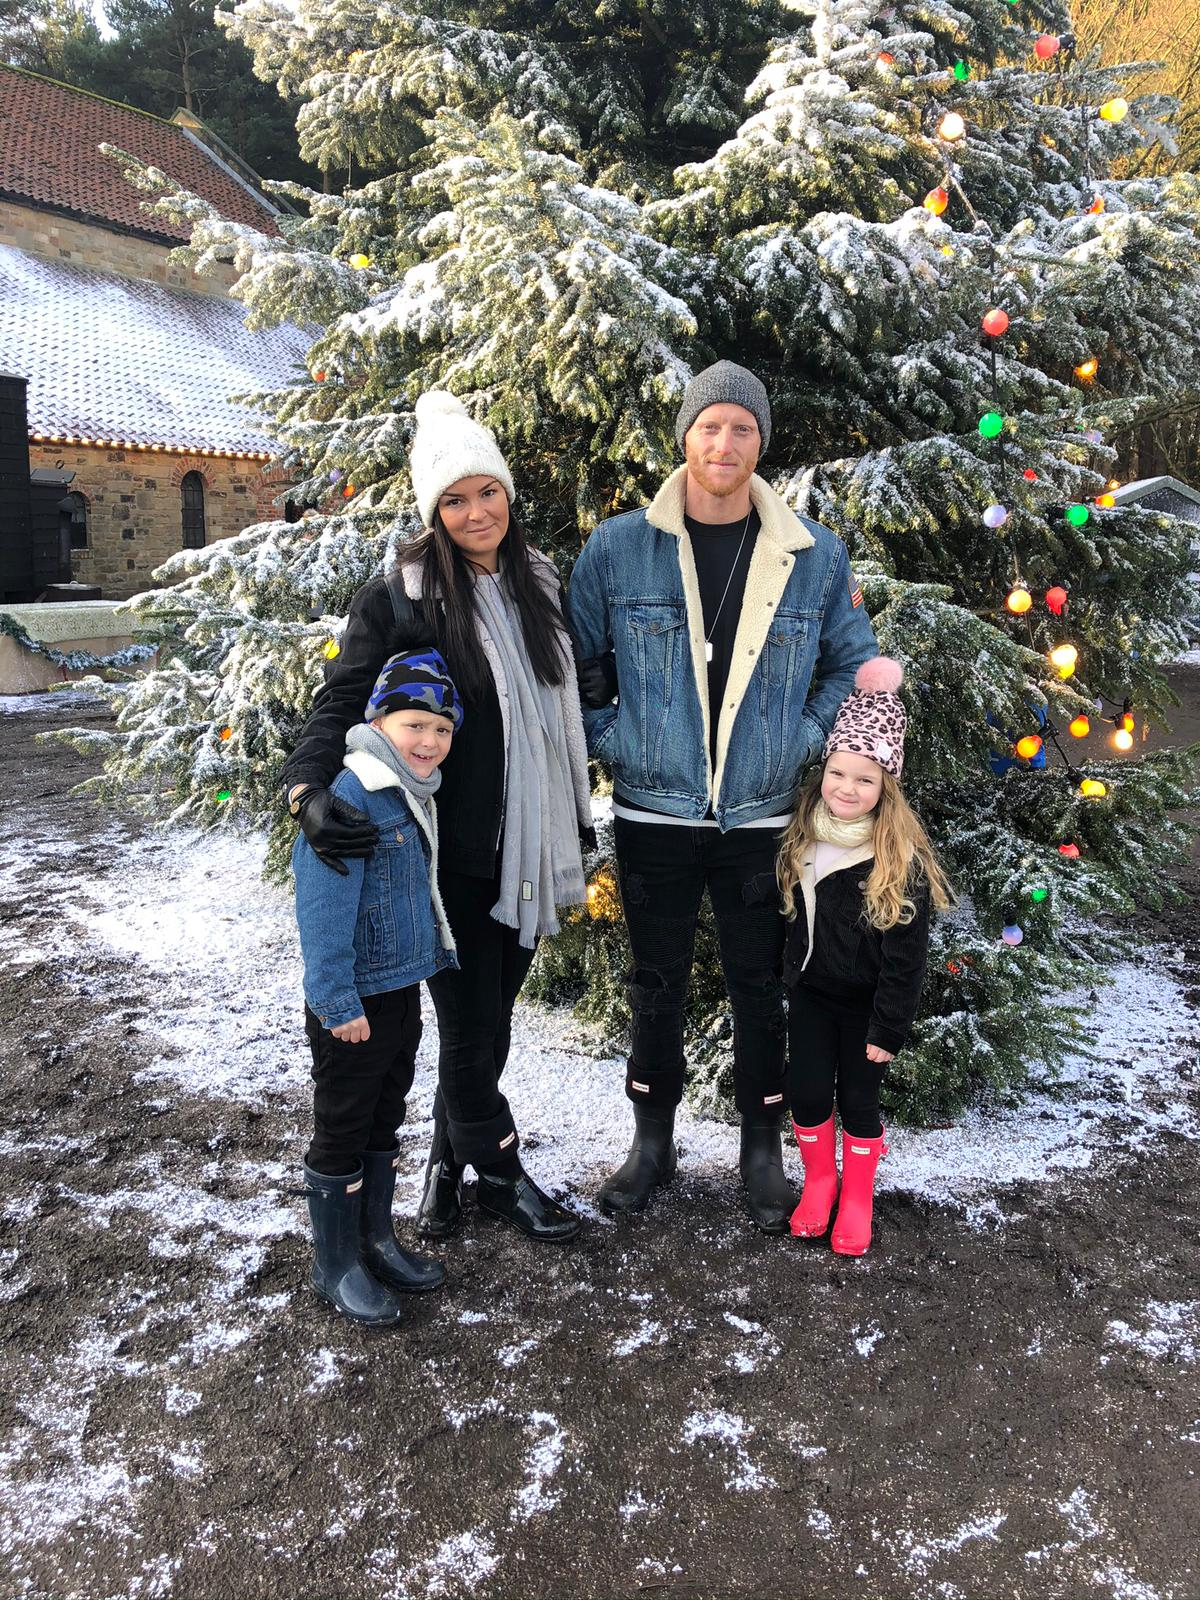 Ben Stokes with his family at Christmas.